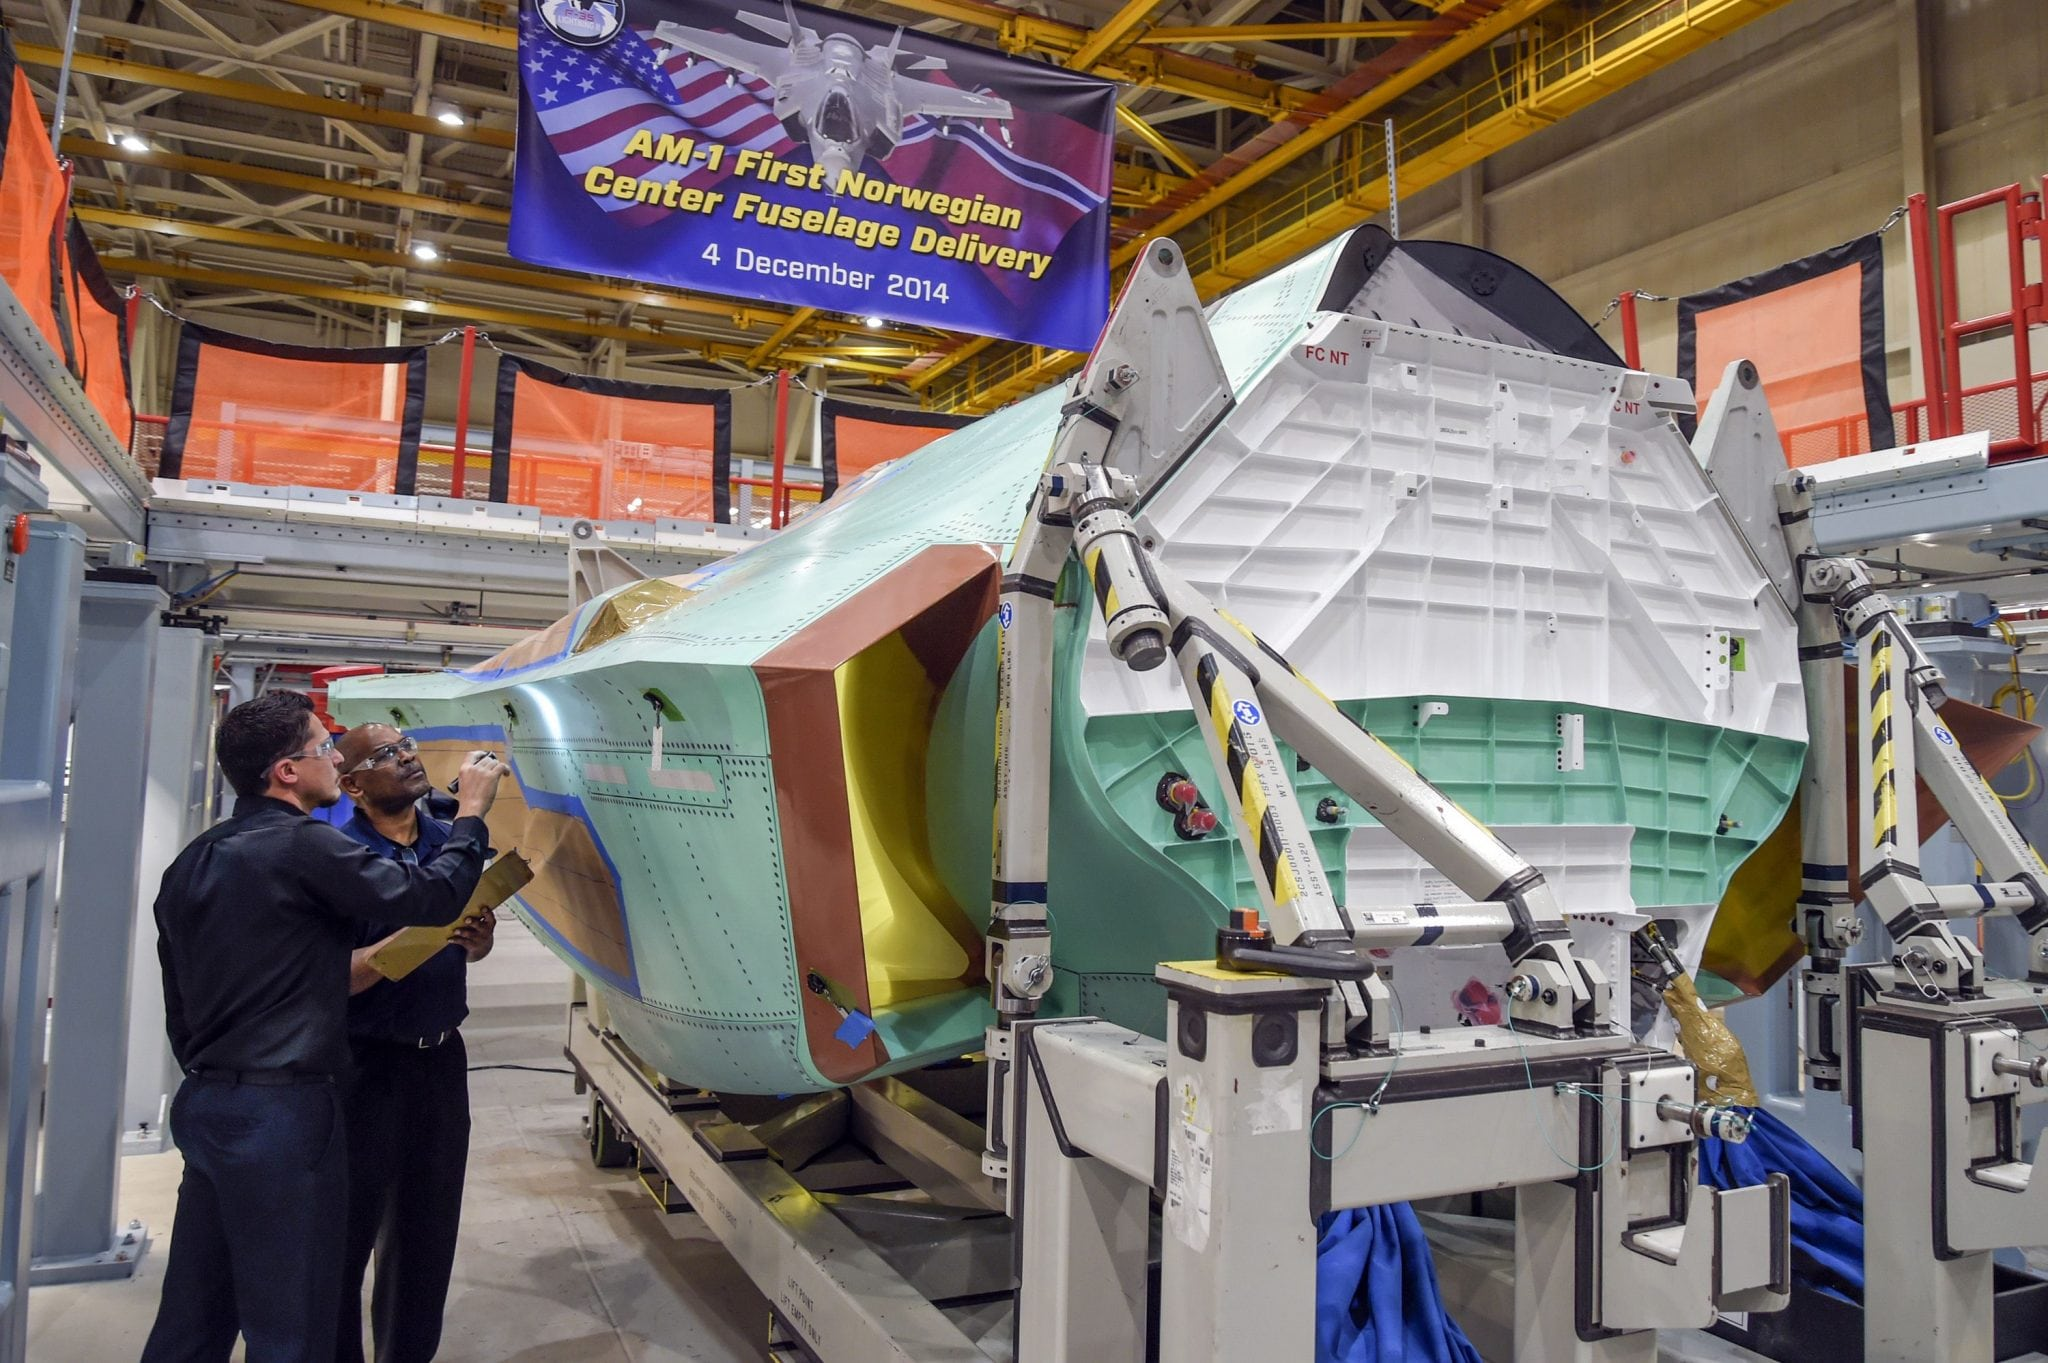 Technicians at Northrop Grumman's Palmdale (Calif.) Aircraft Integration Center of Excellence conduct final quality inspections on the center fuselage for AM-1